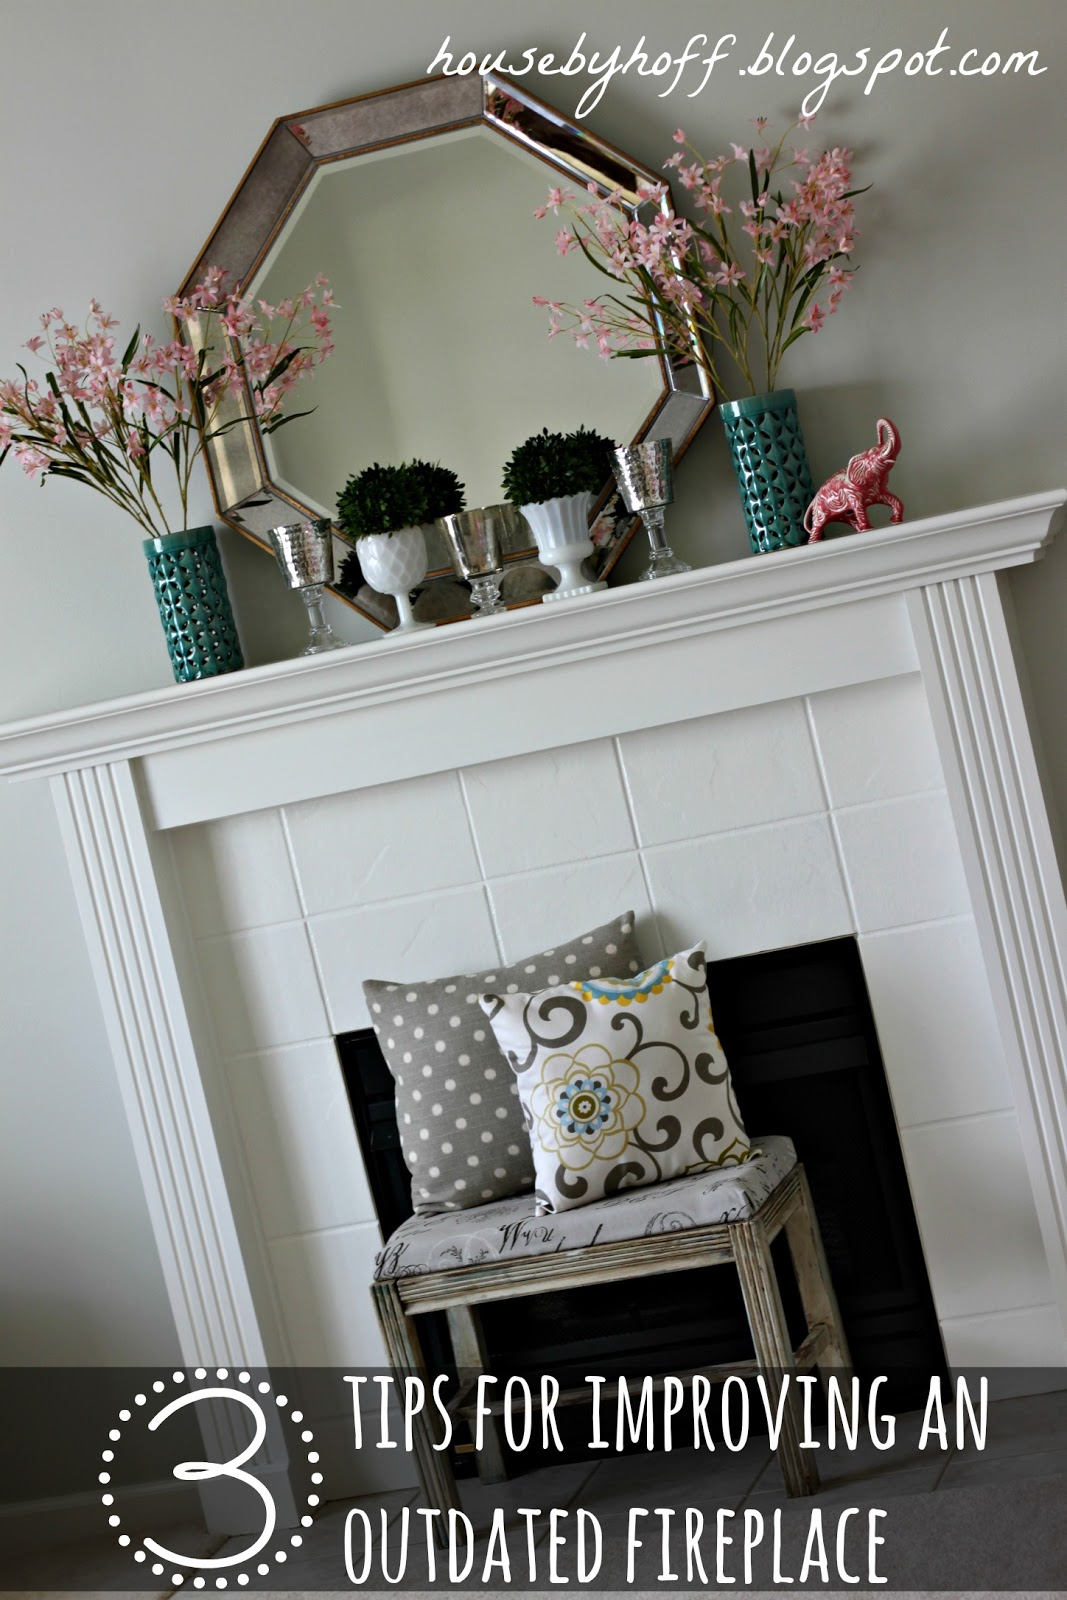 easy ways to improve an outdated fireplace house by hoff